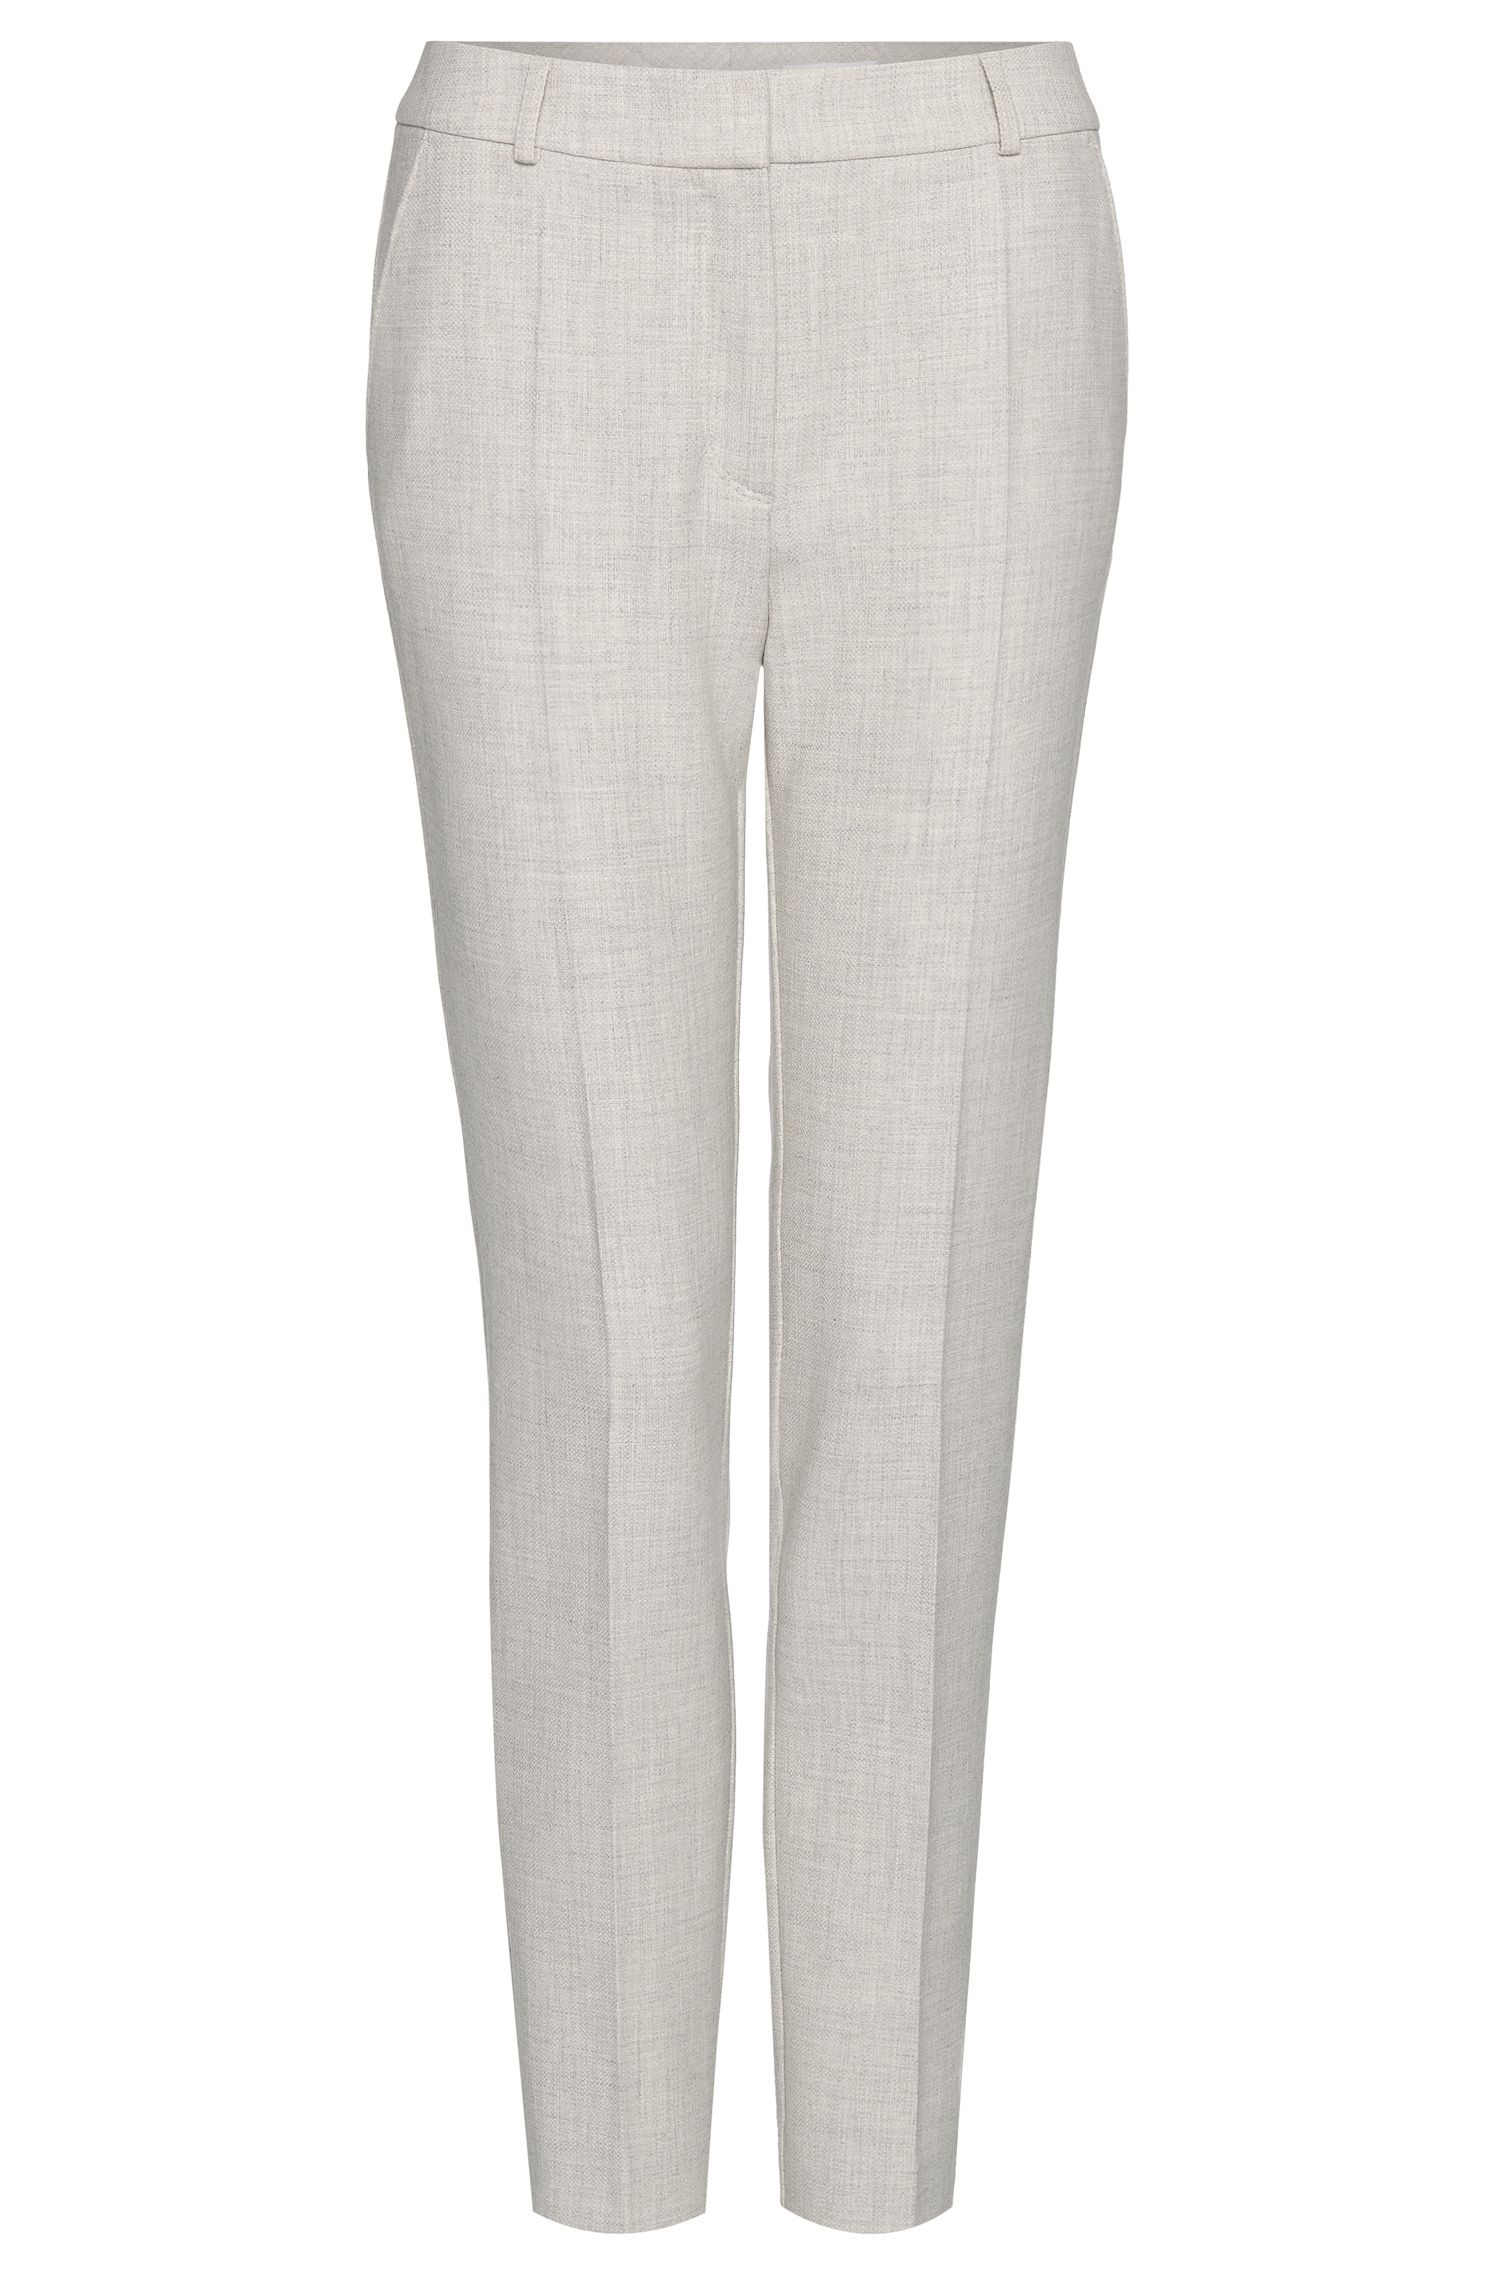 'Acnes' | Stretch Virgin Wool Blend Trousers